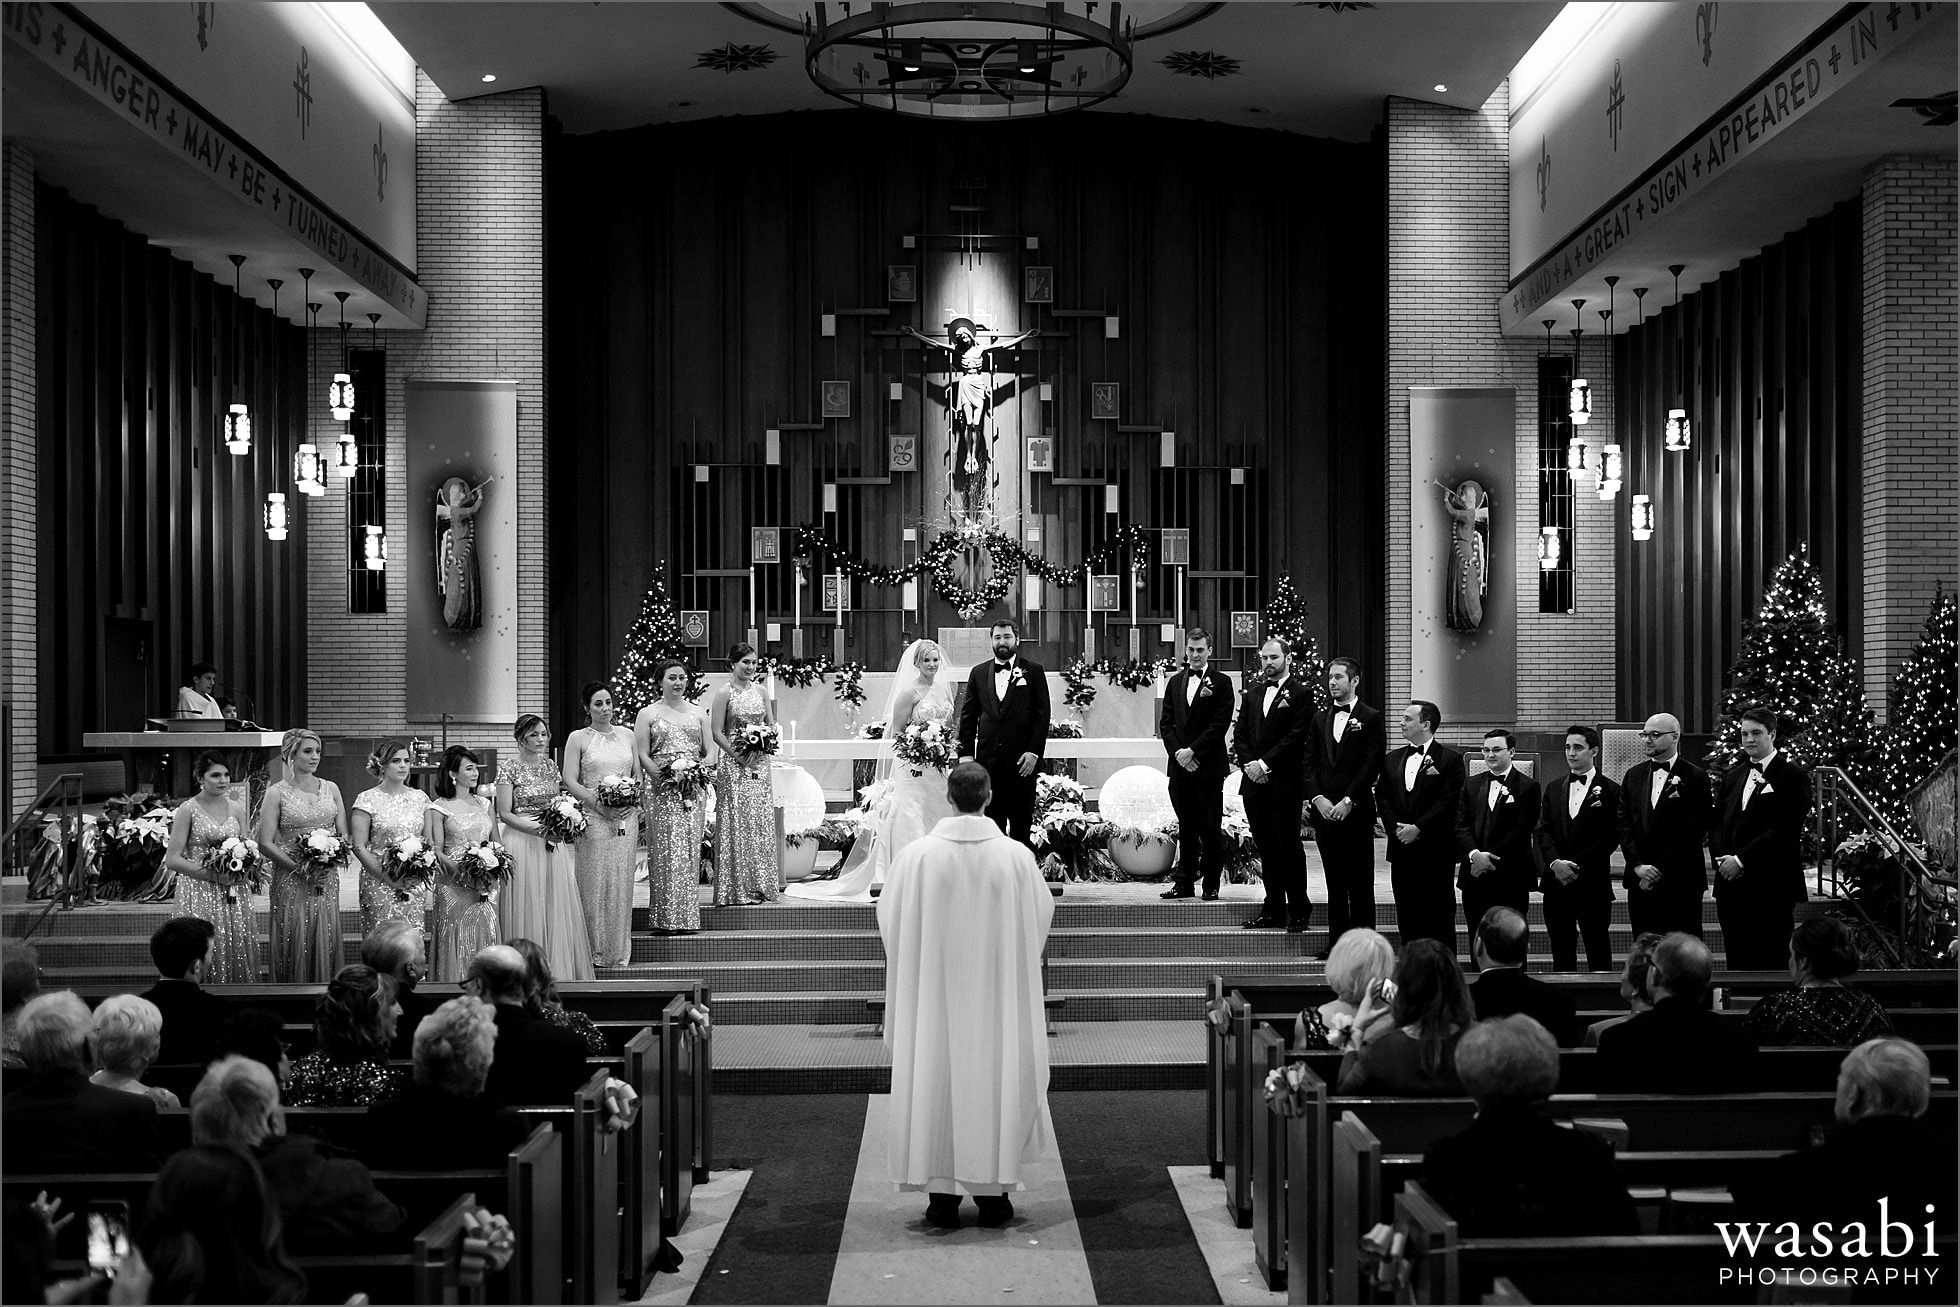 large wedding party during wedding ceremony at Immaculate Conception Catholic Church in Chicago